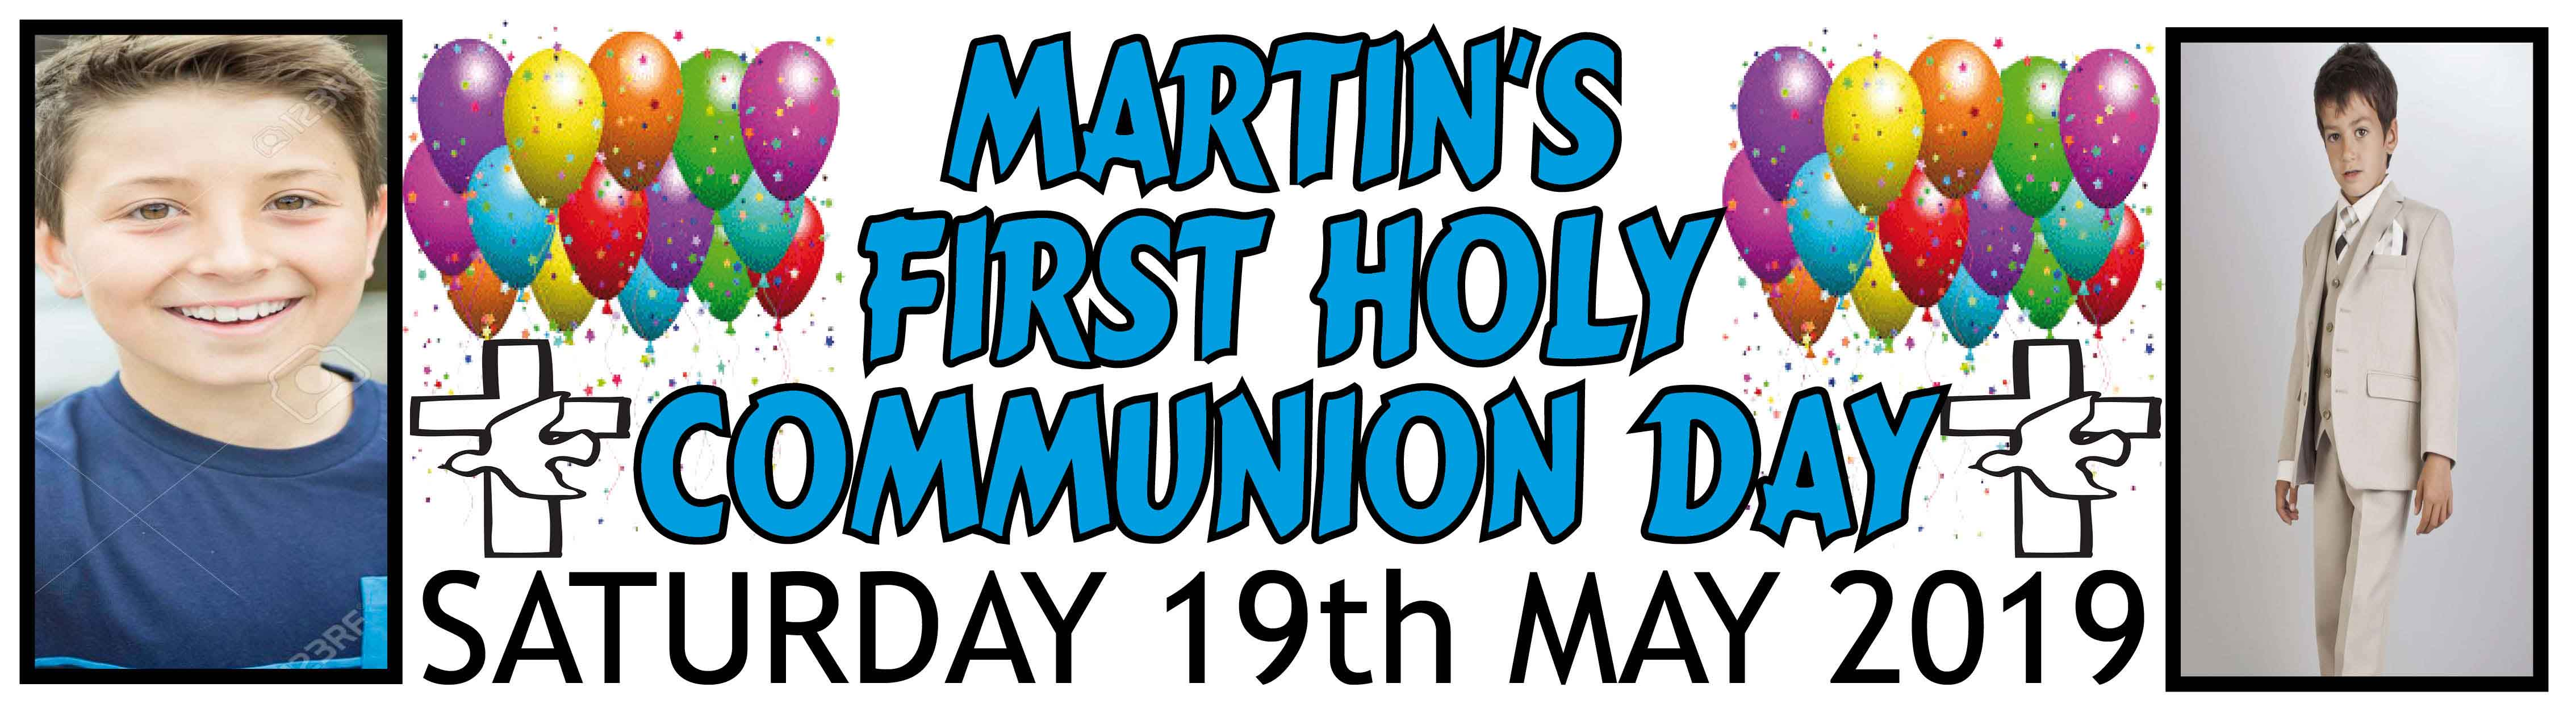 1st Holy Communion Banner 17